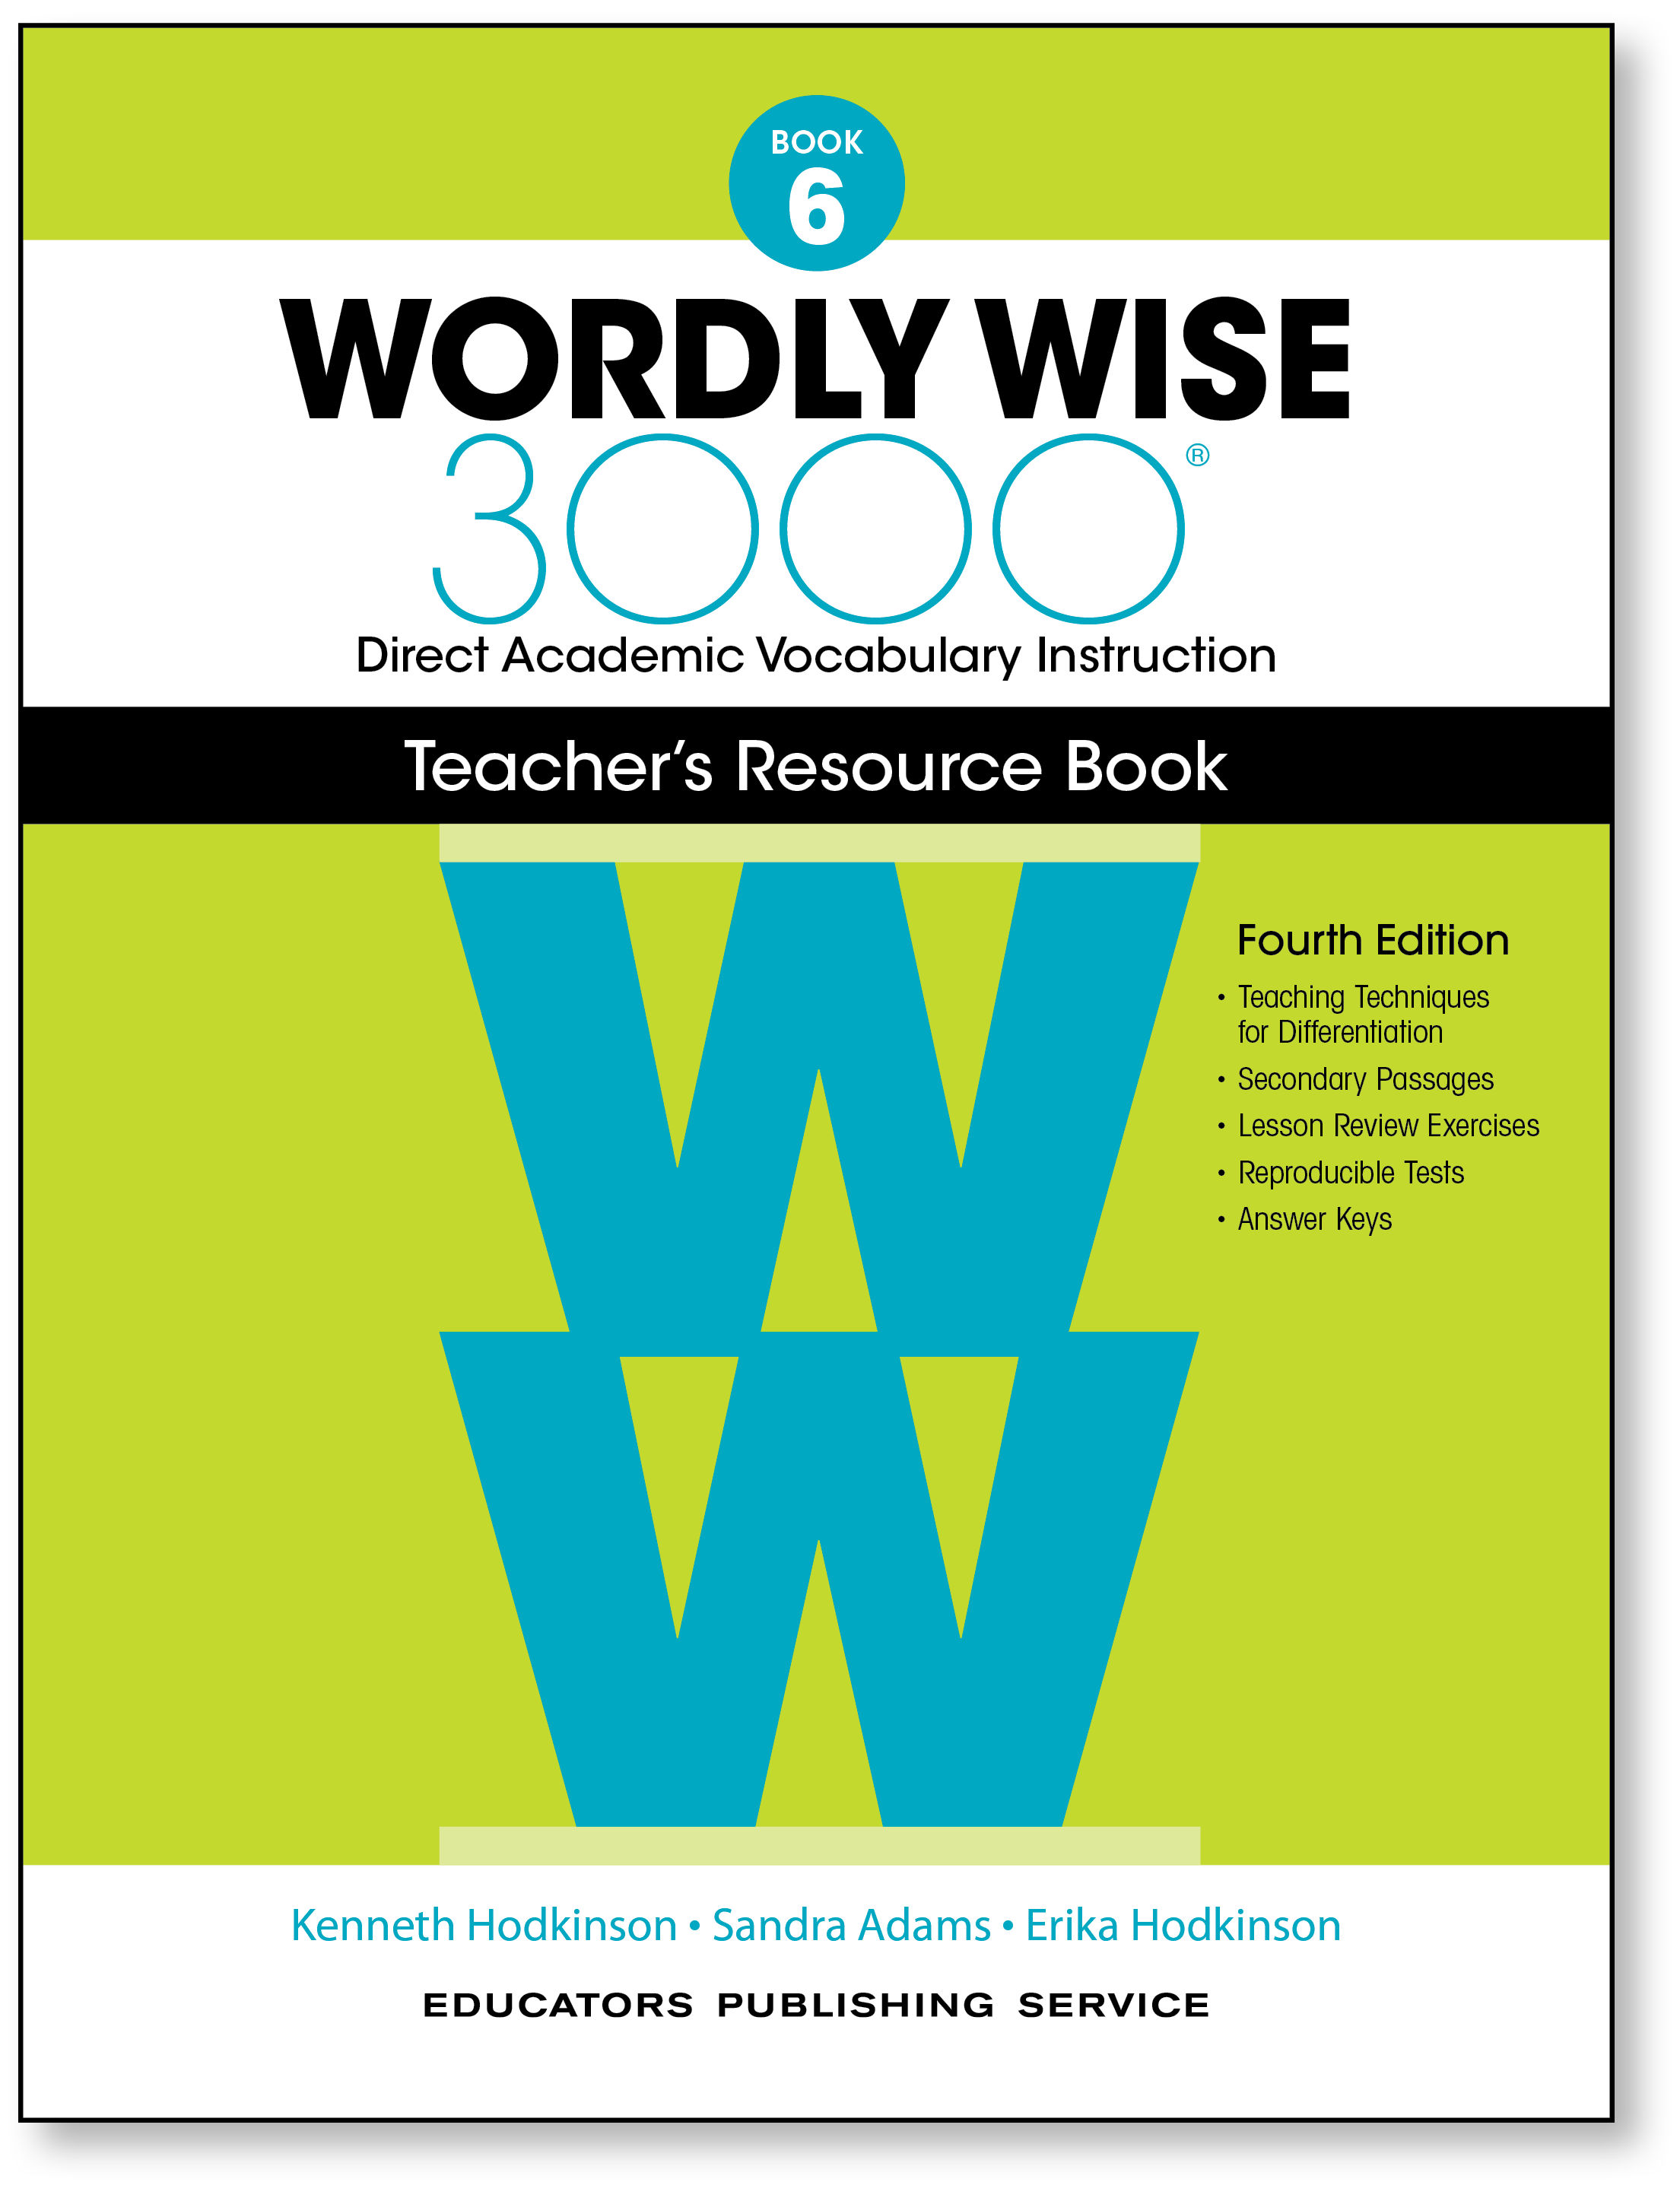 wordly wise book 6 pdf